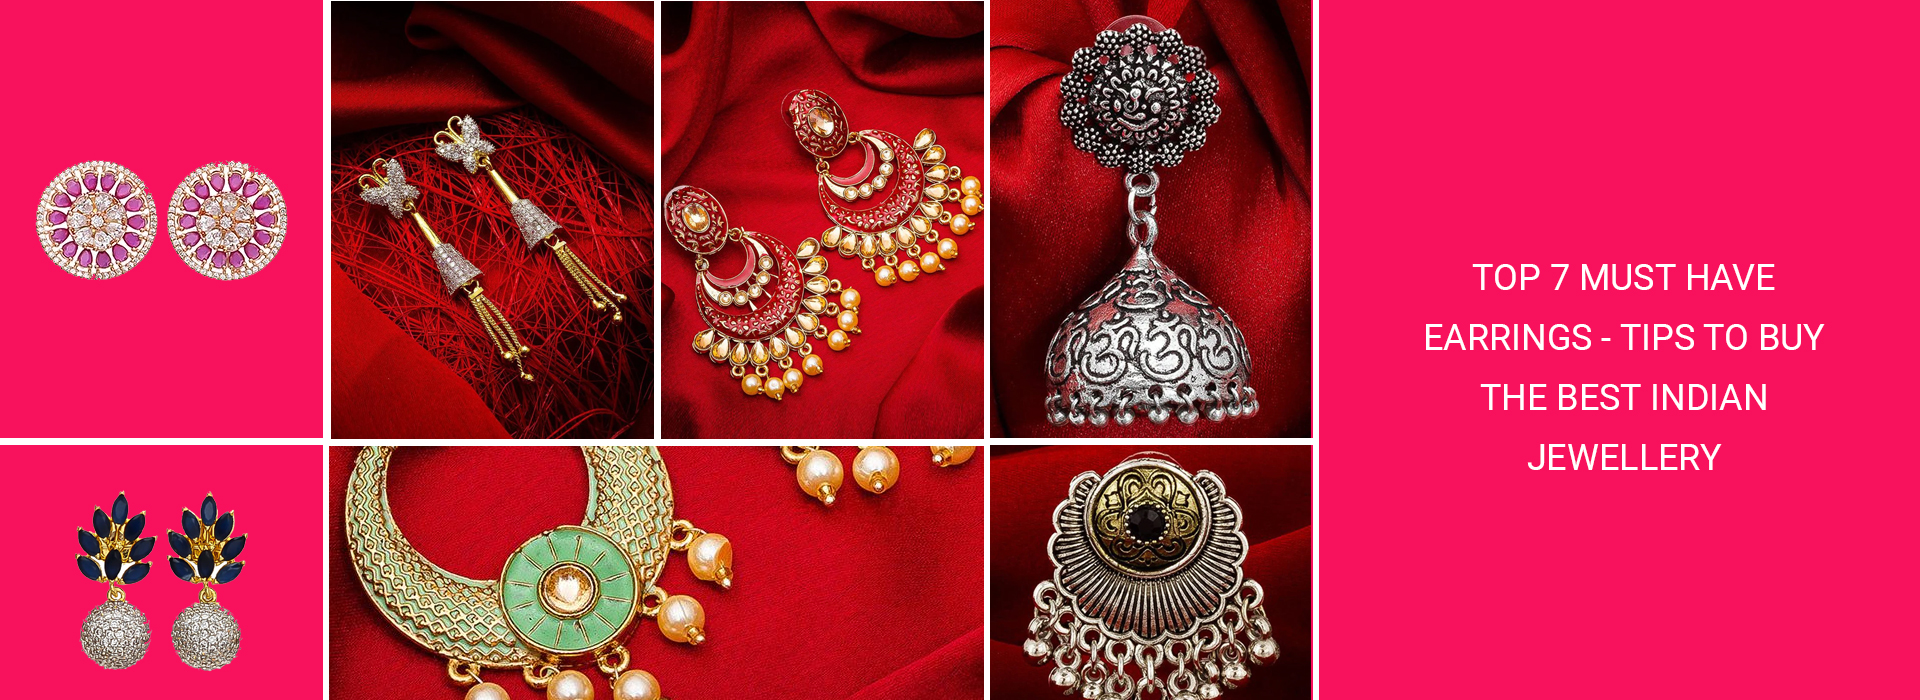 Top 7 Must Have Earrings : Tips To Buy The Best Indian Jewellery